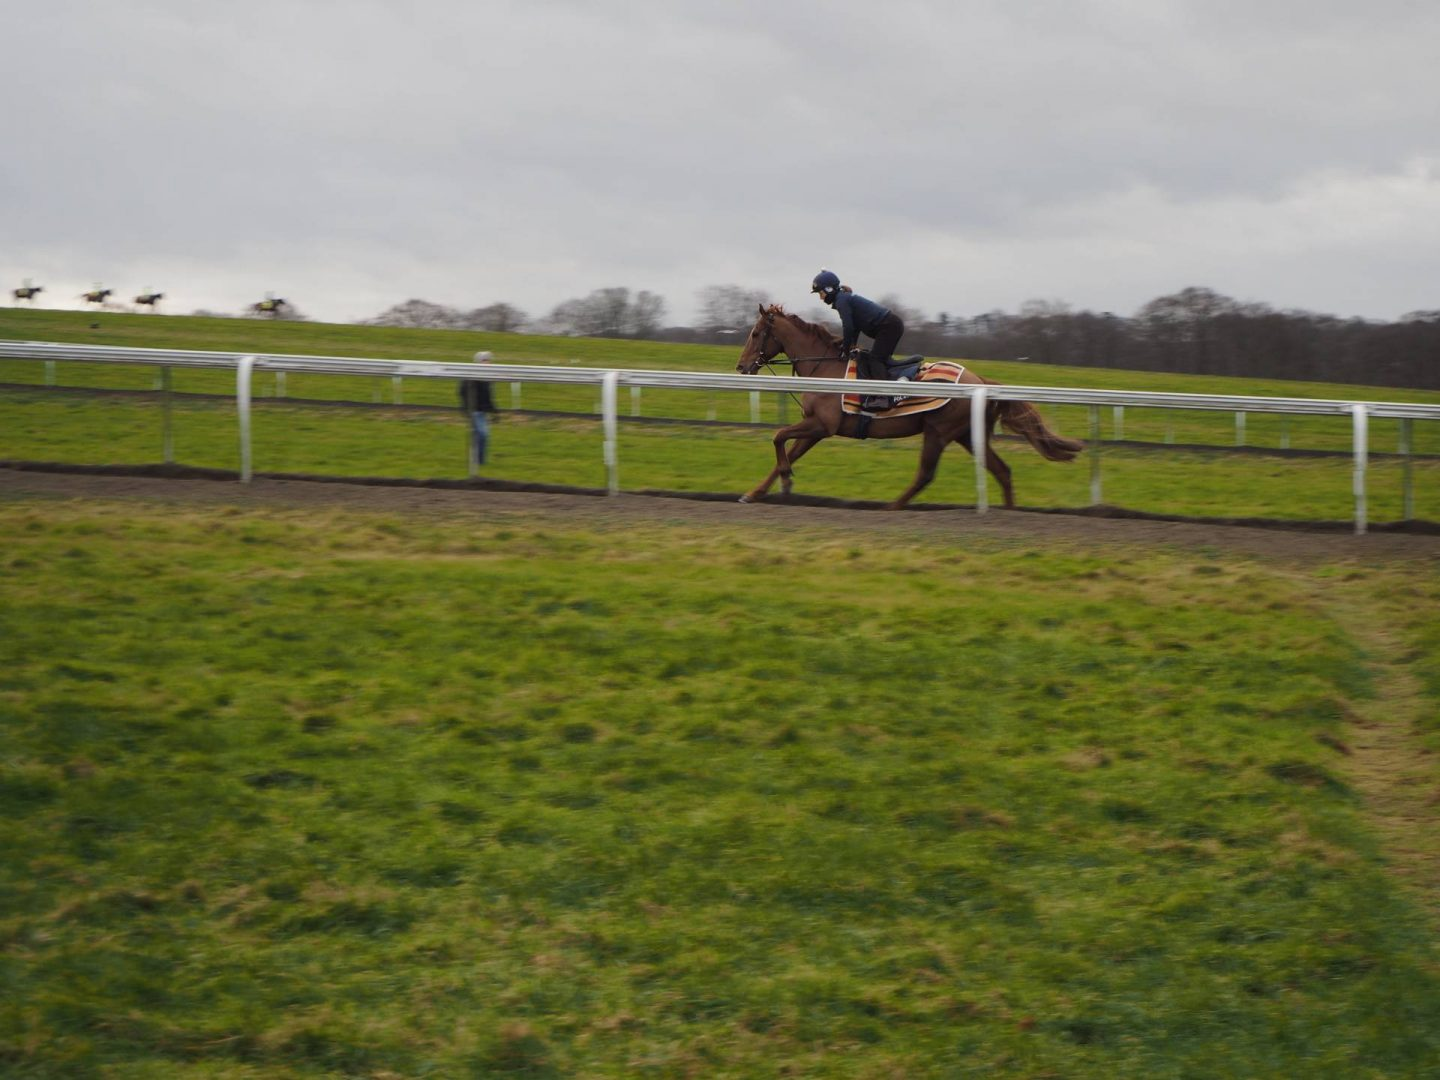 Horse cantering on gallop track in Newmarket